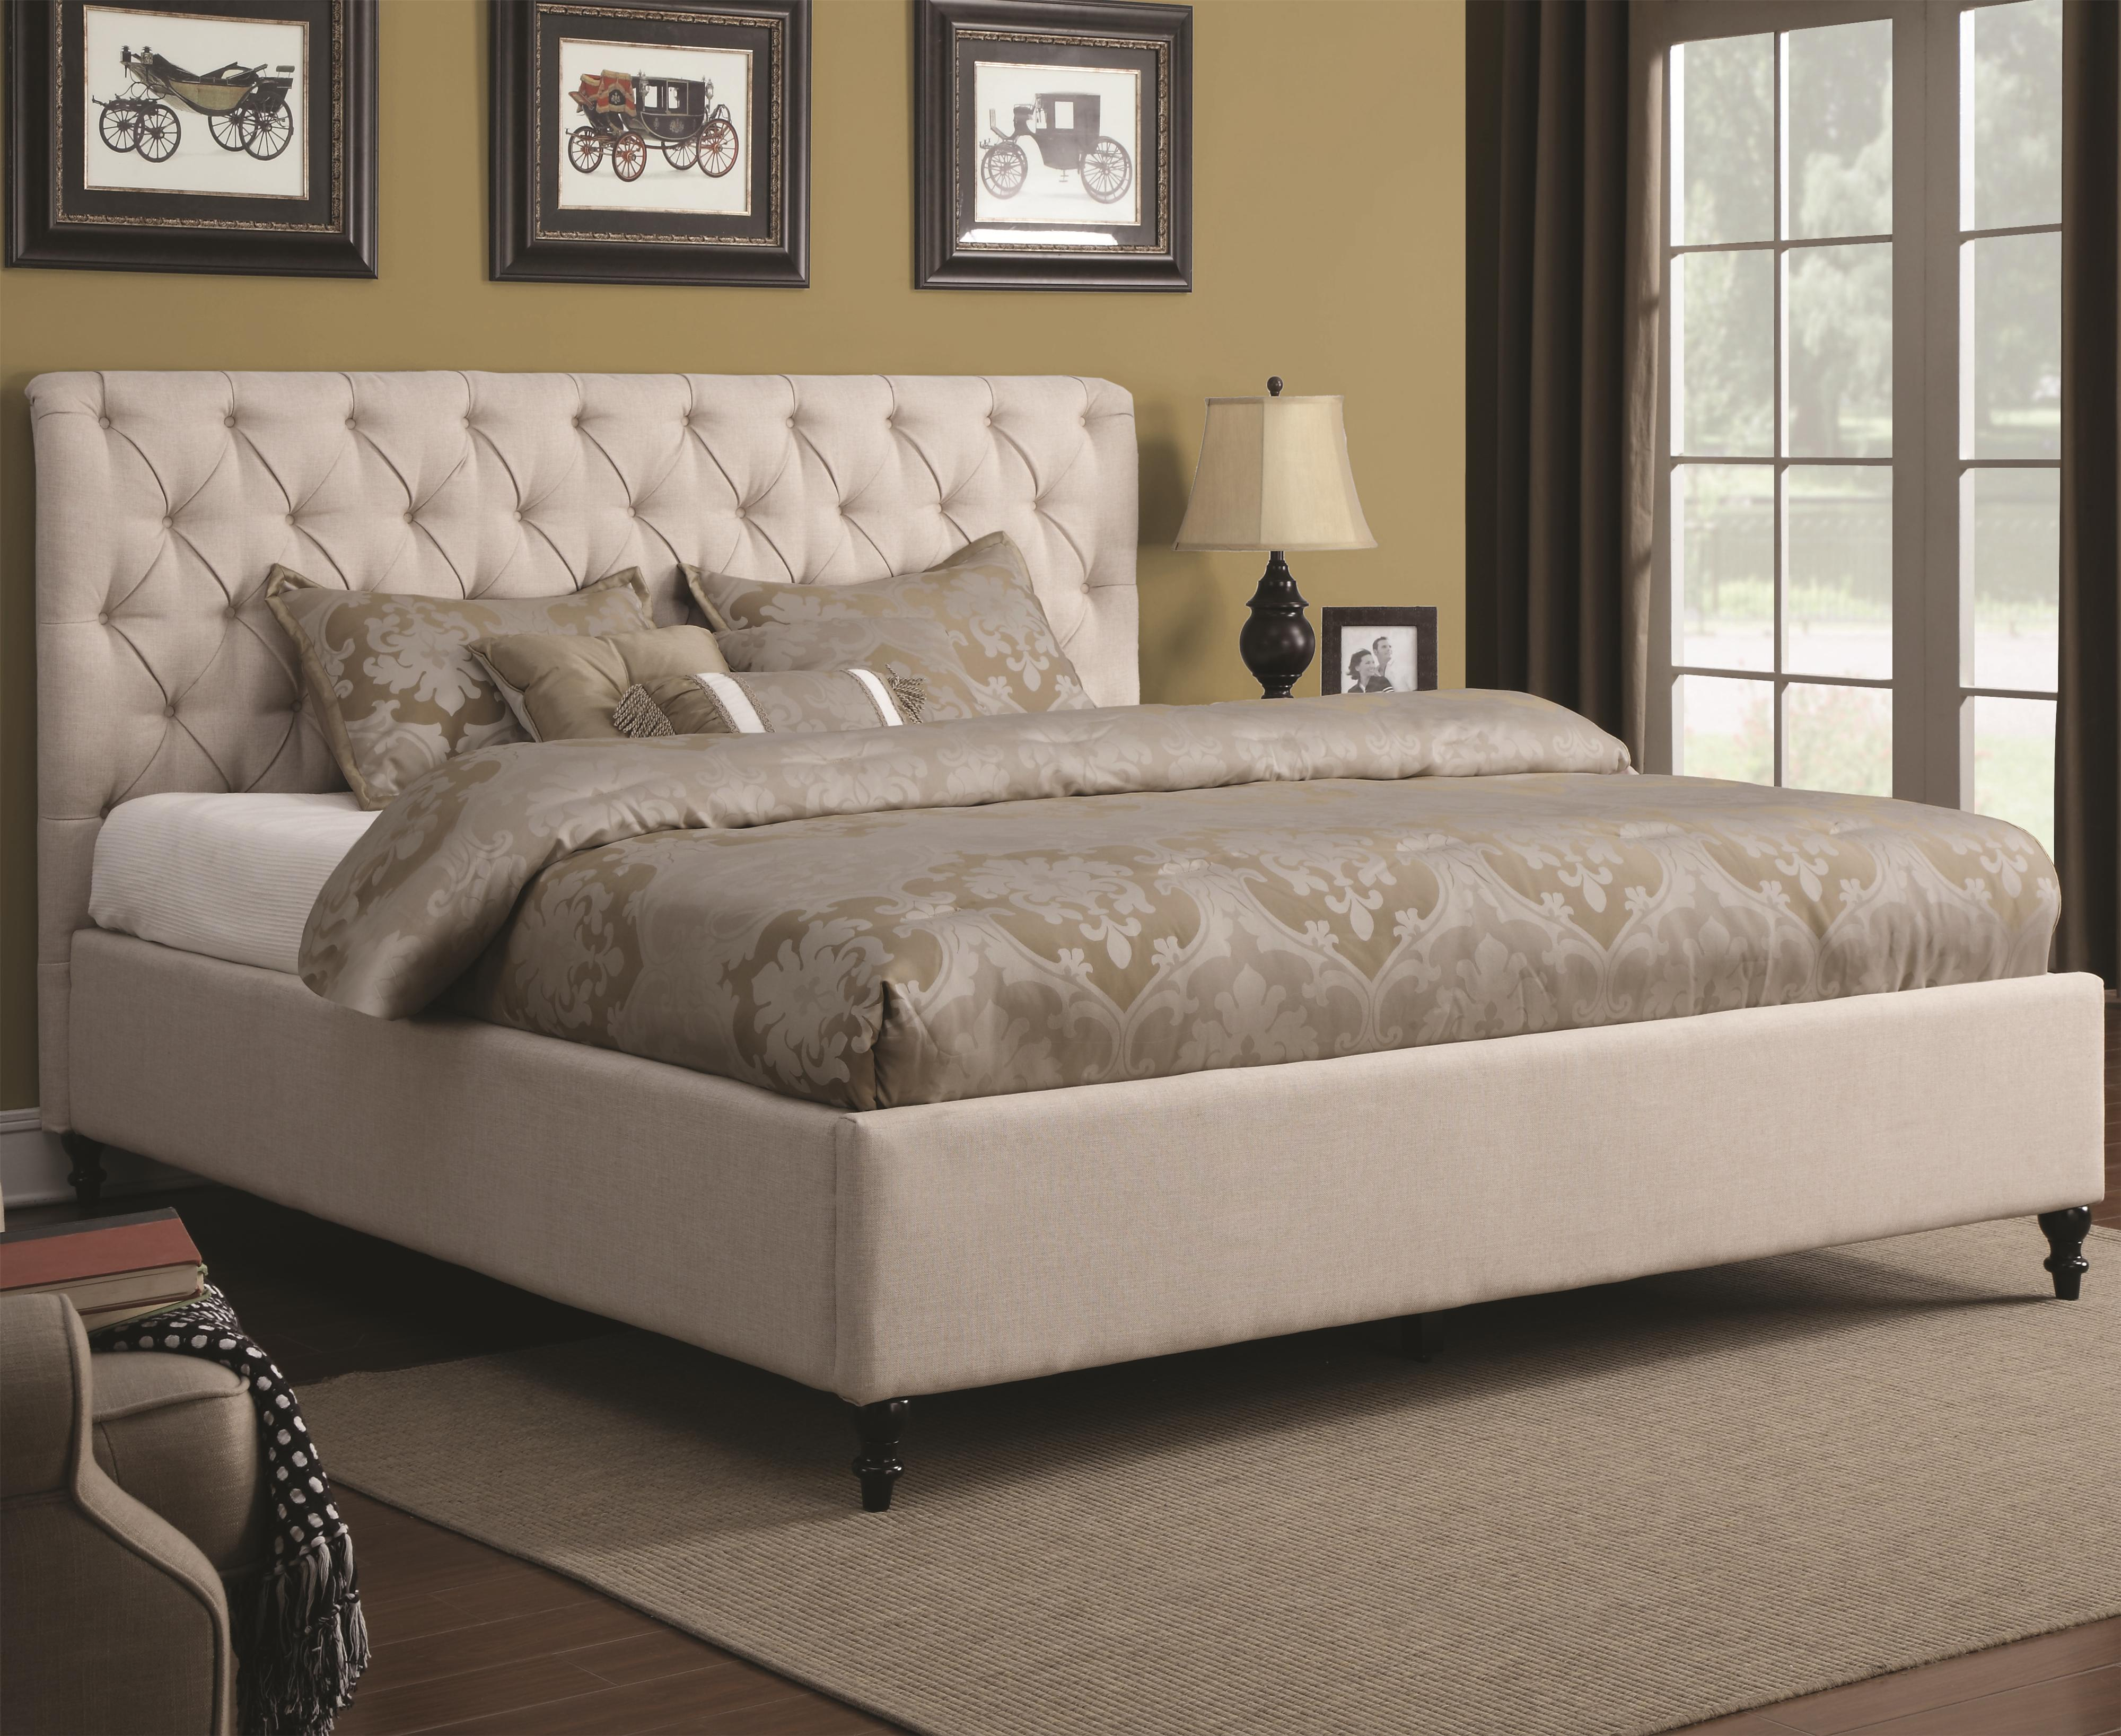 coaster upholstered beds queen upholstered bed item number 300403q - Coaster Bed Frame